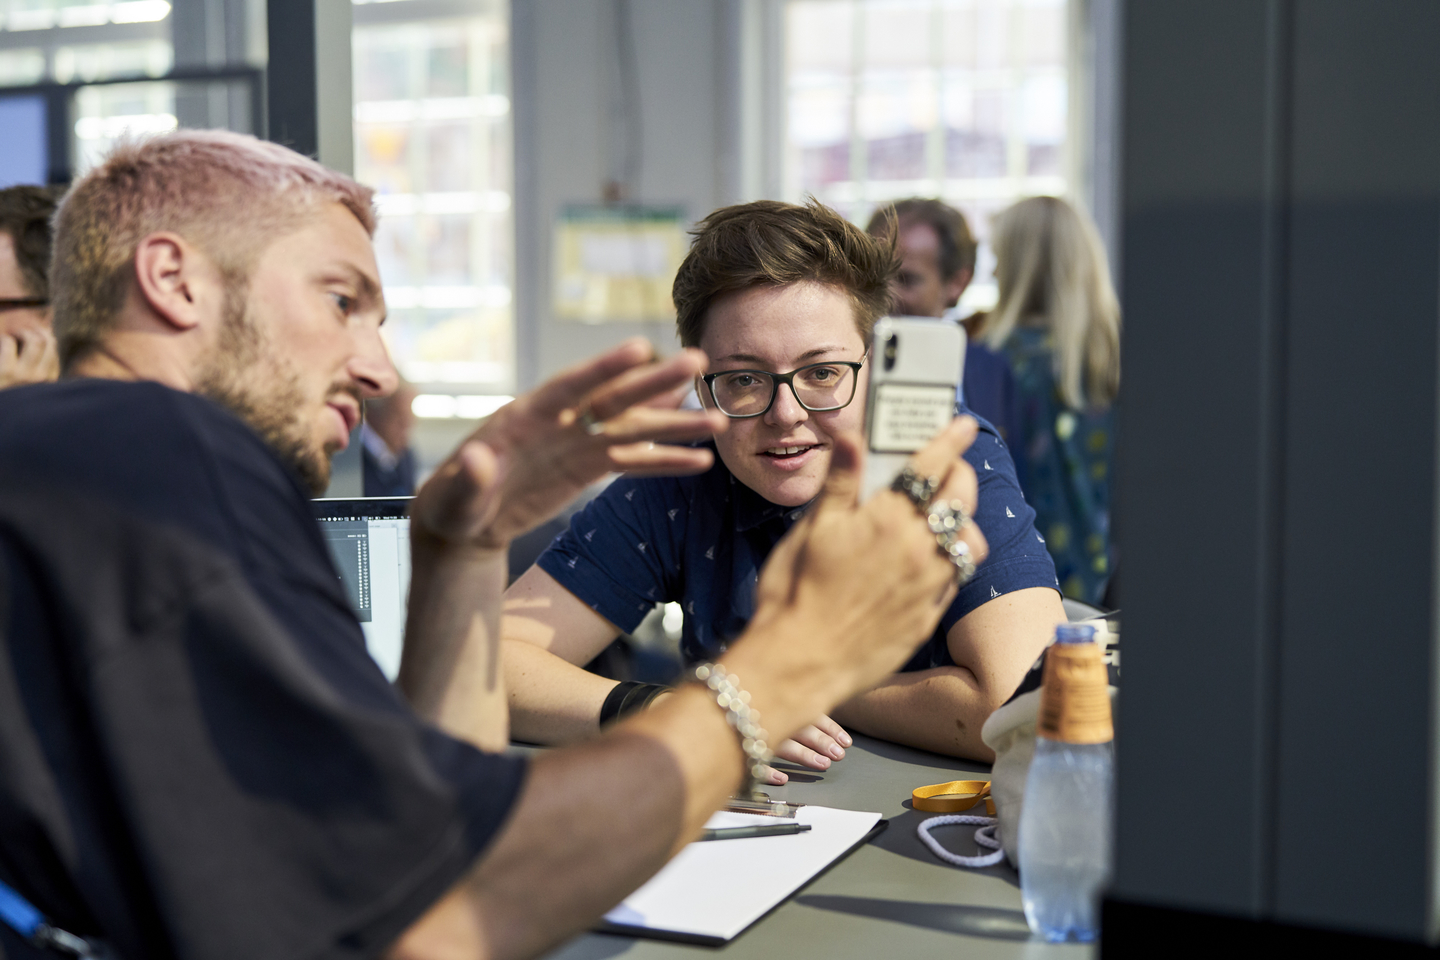 Tom London offered personal mentor sessions to lucky attendees. Photo by Richard Pflaume/Daimler AG